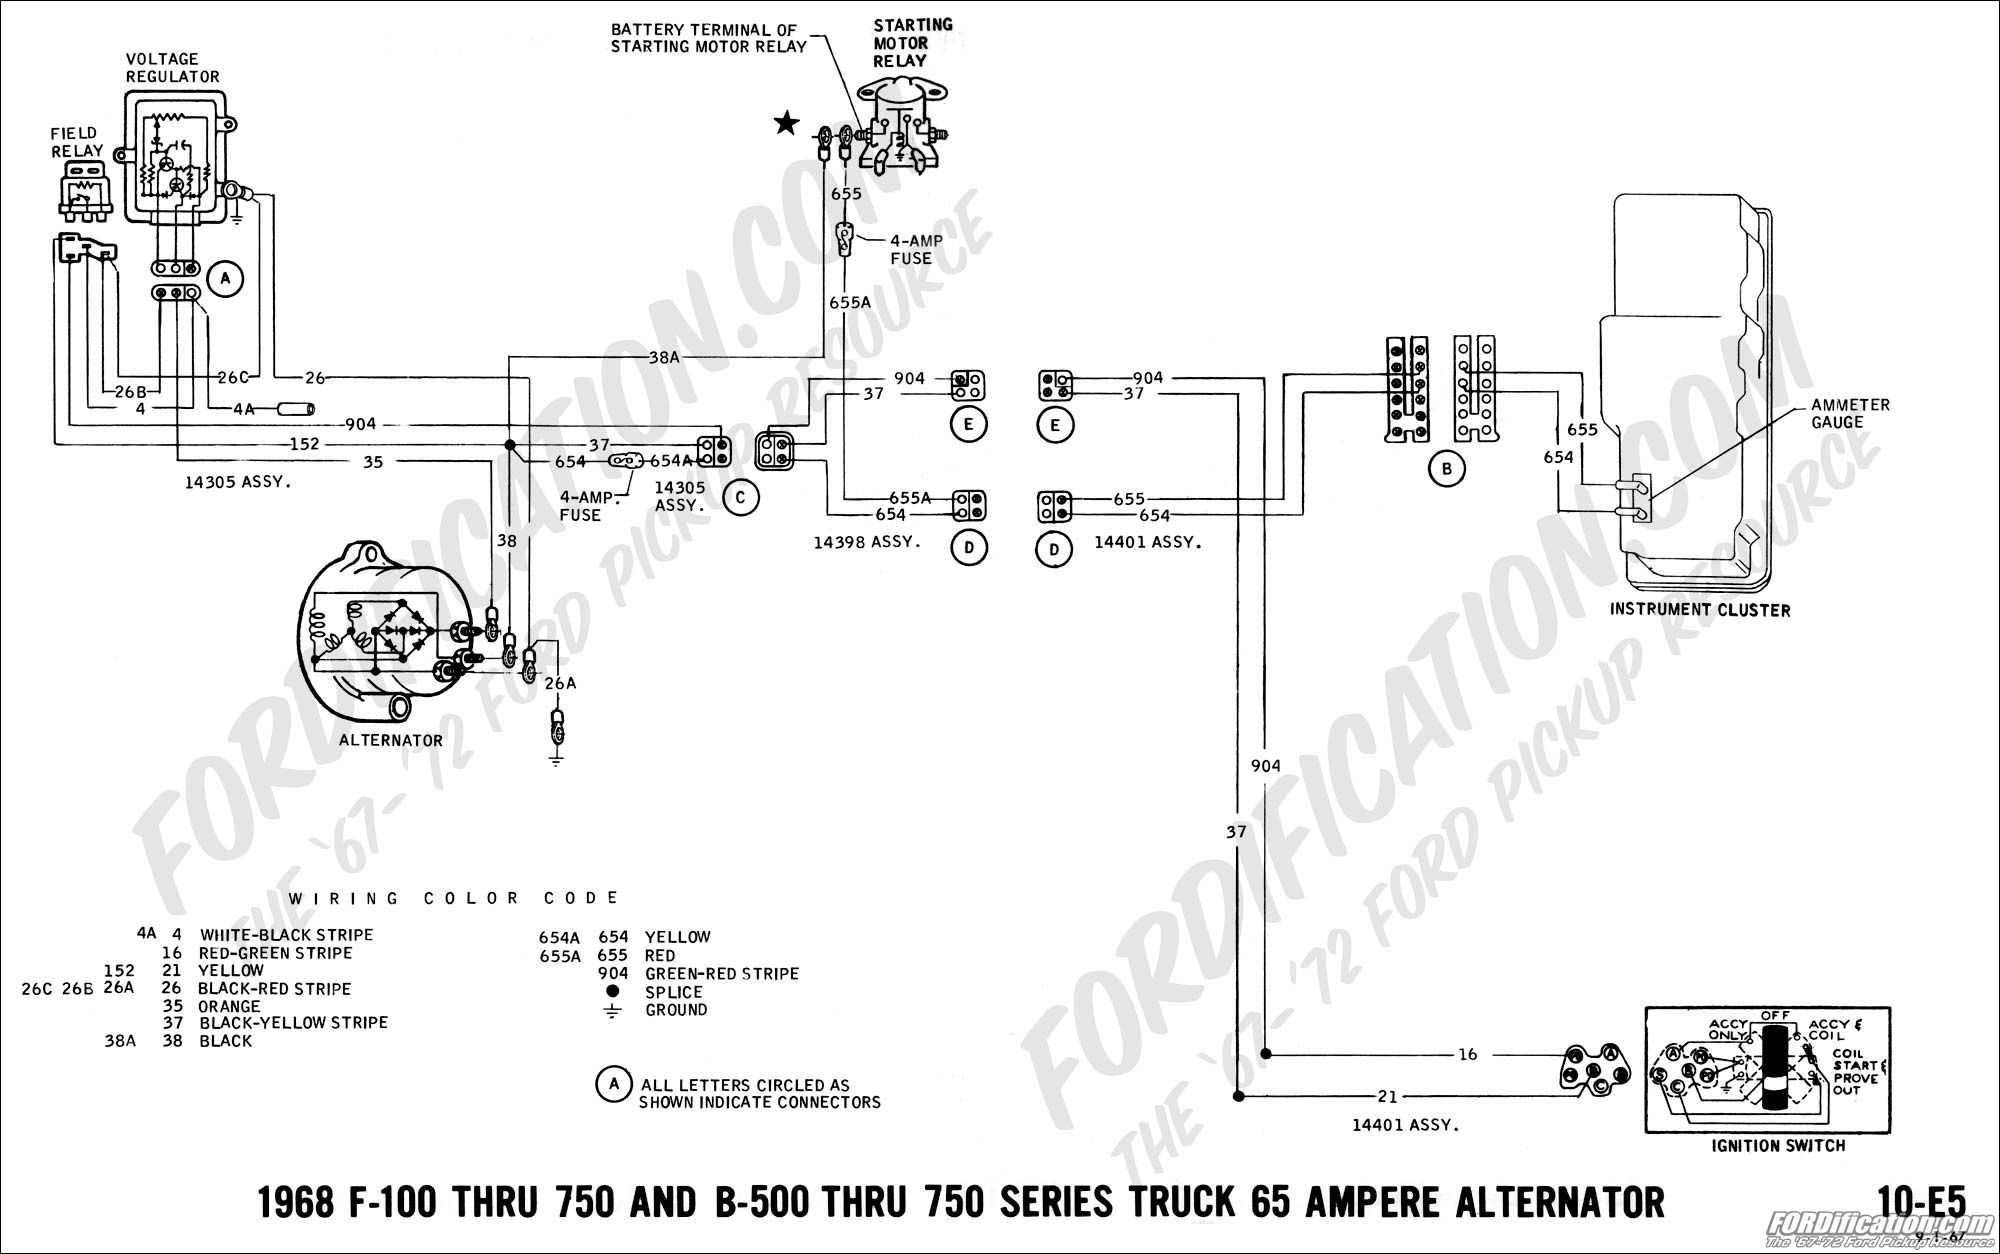 international 304 alternator wiring diagram